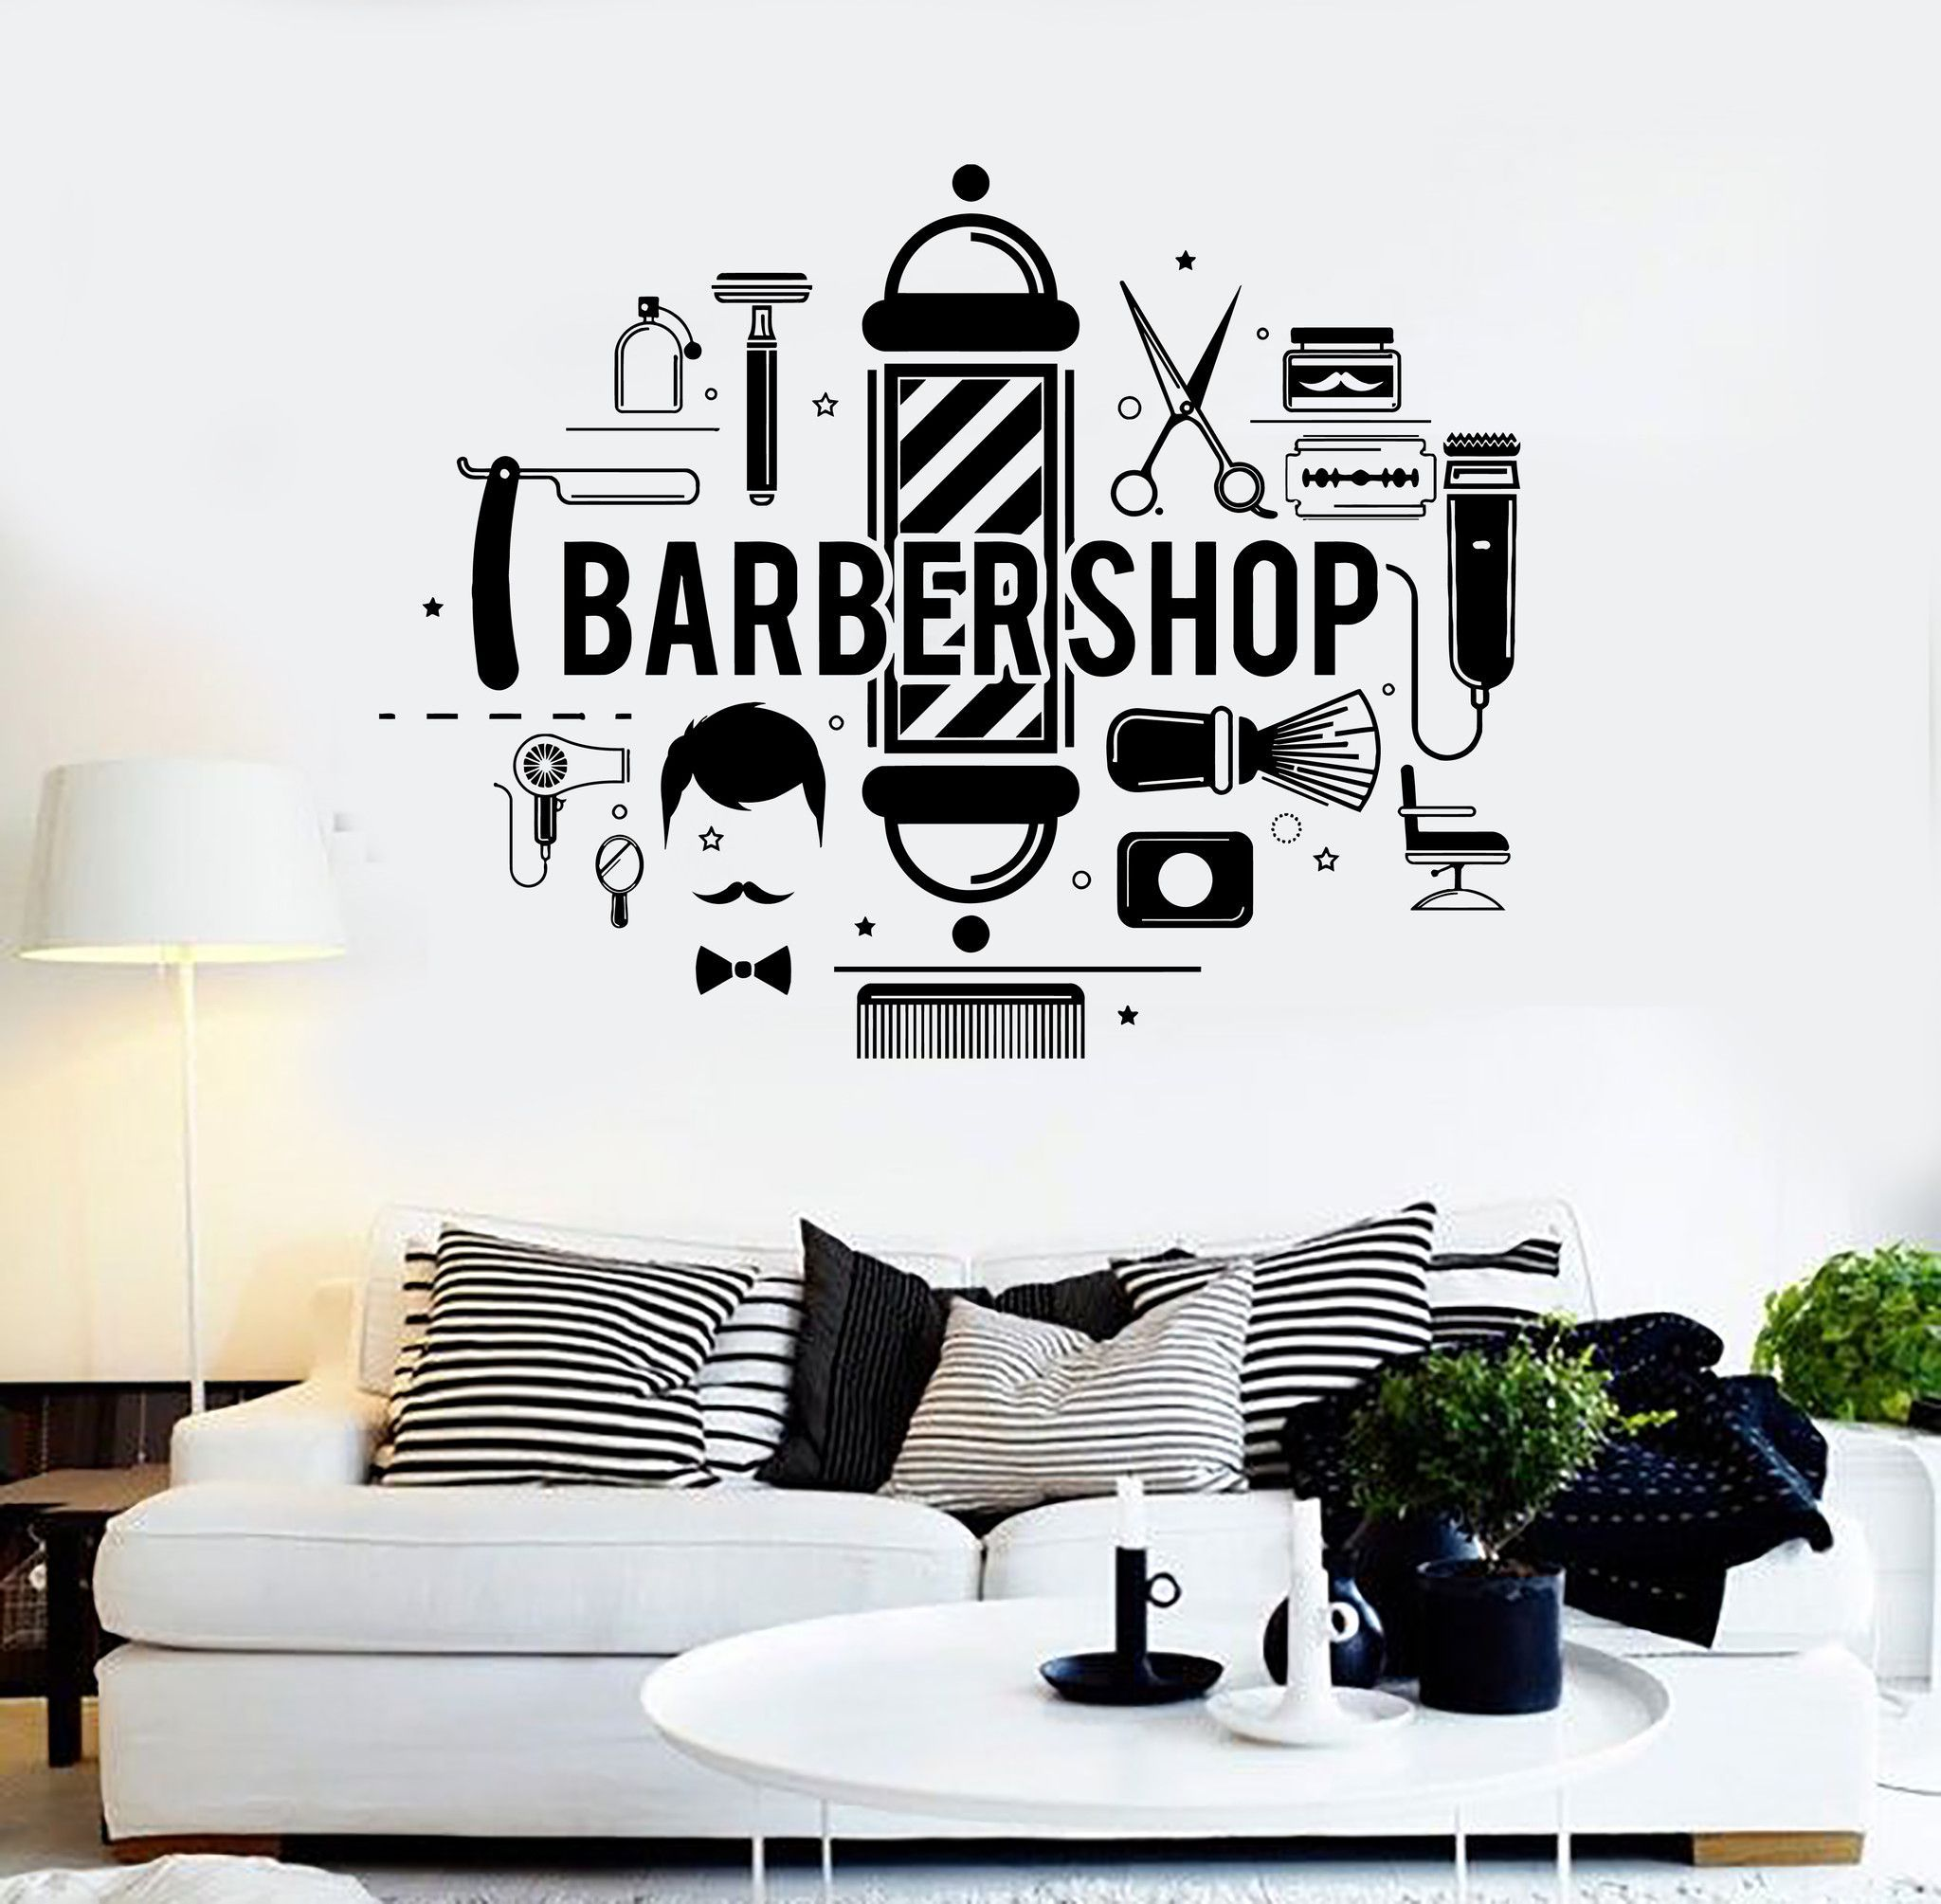 Vinyl Wall Decal Barbershop Hair Salon Stylist Barber Stickers - Custom vinyl wall decals for hair salonvinyl wall decal hair salon stylist hairdresser barber shop